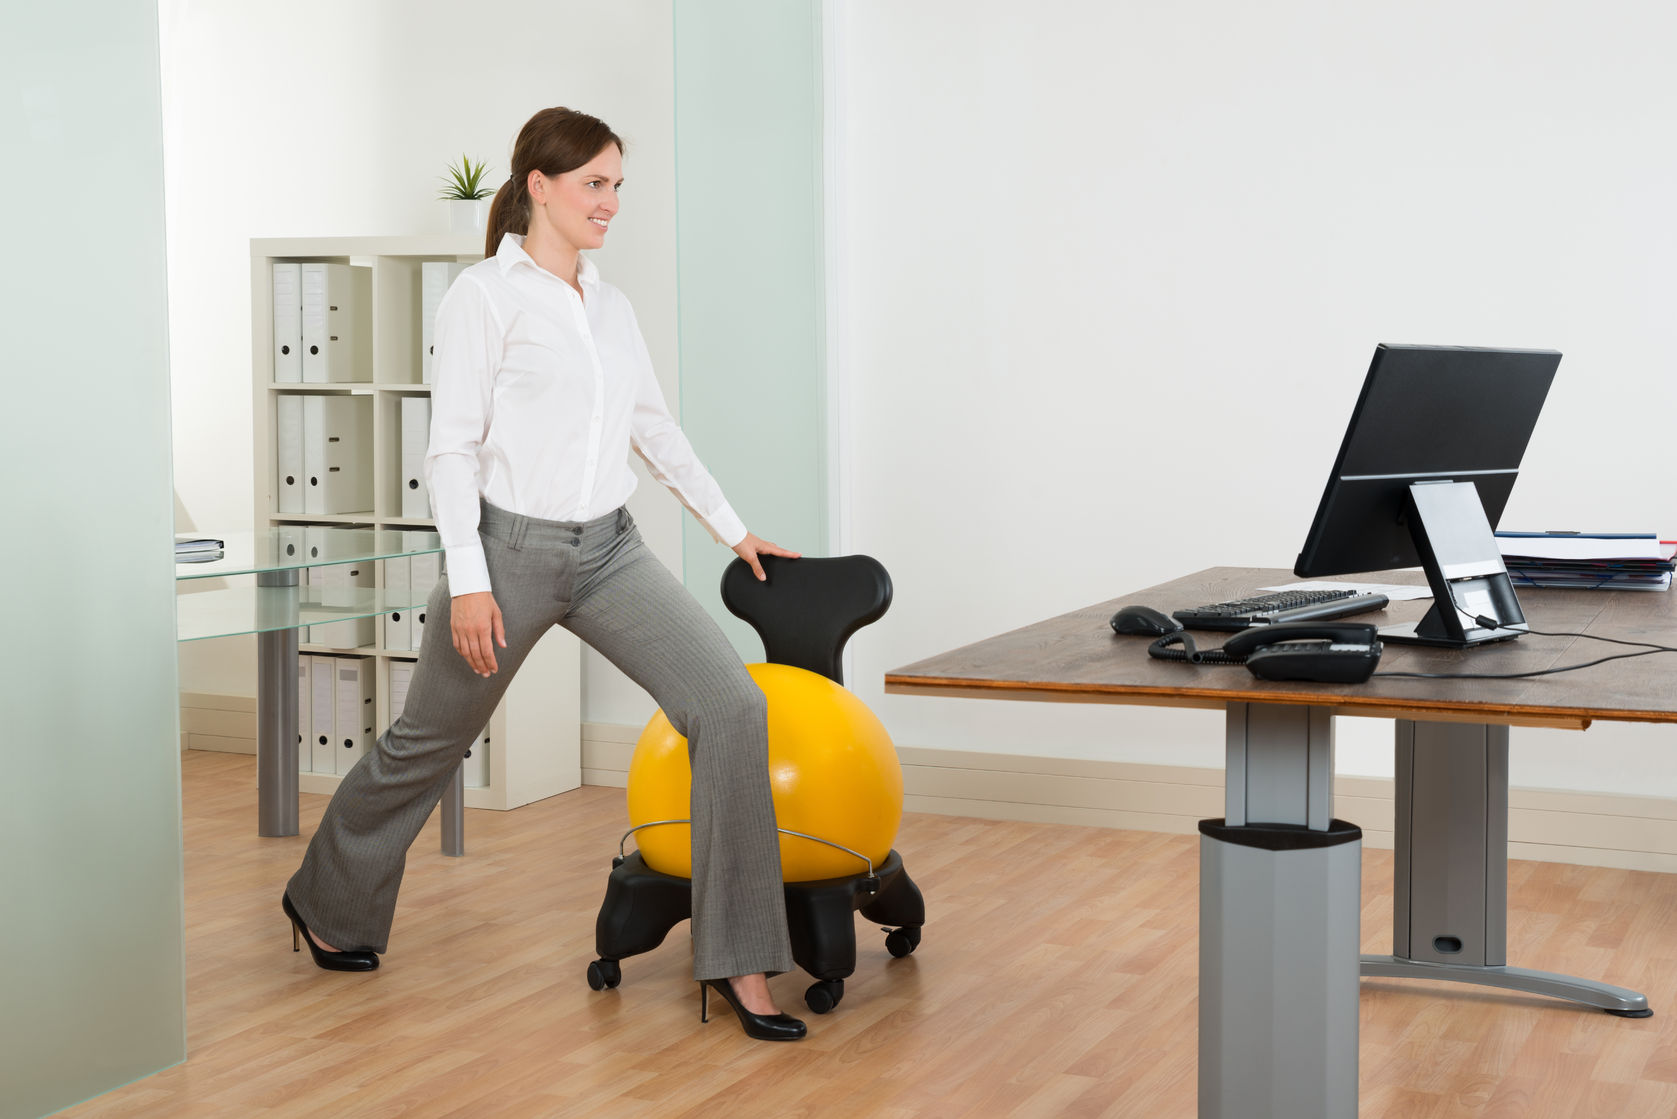 Get Up Get On Up Simply Standing Reduces Blood Sugar Levels